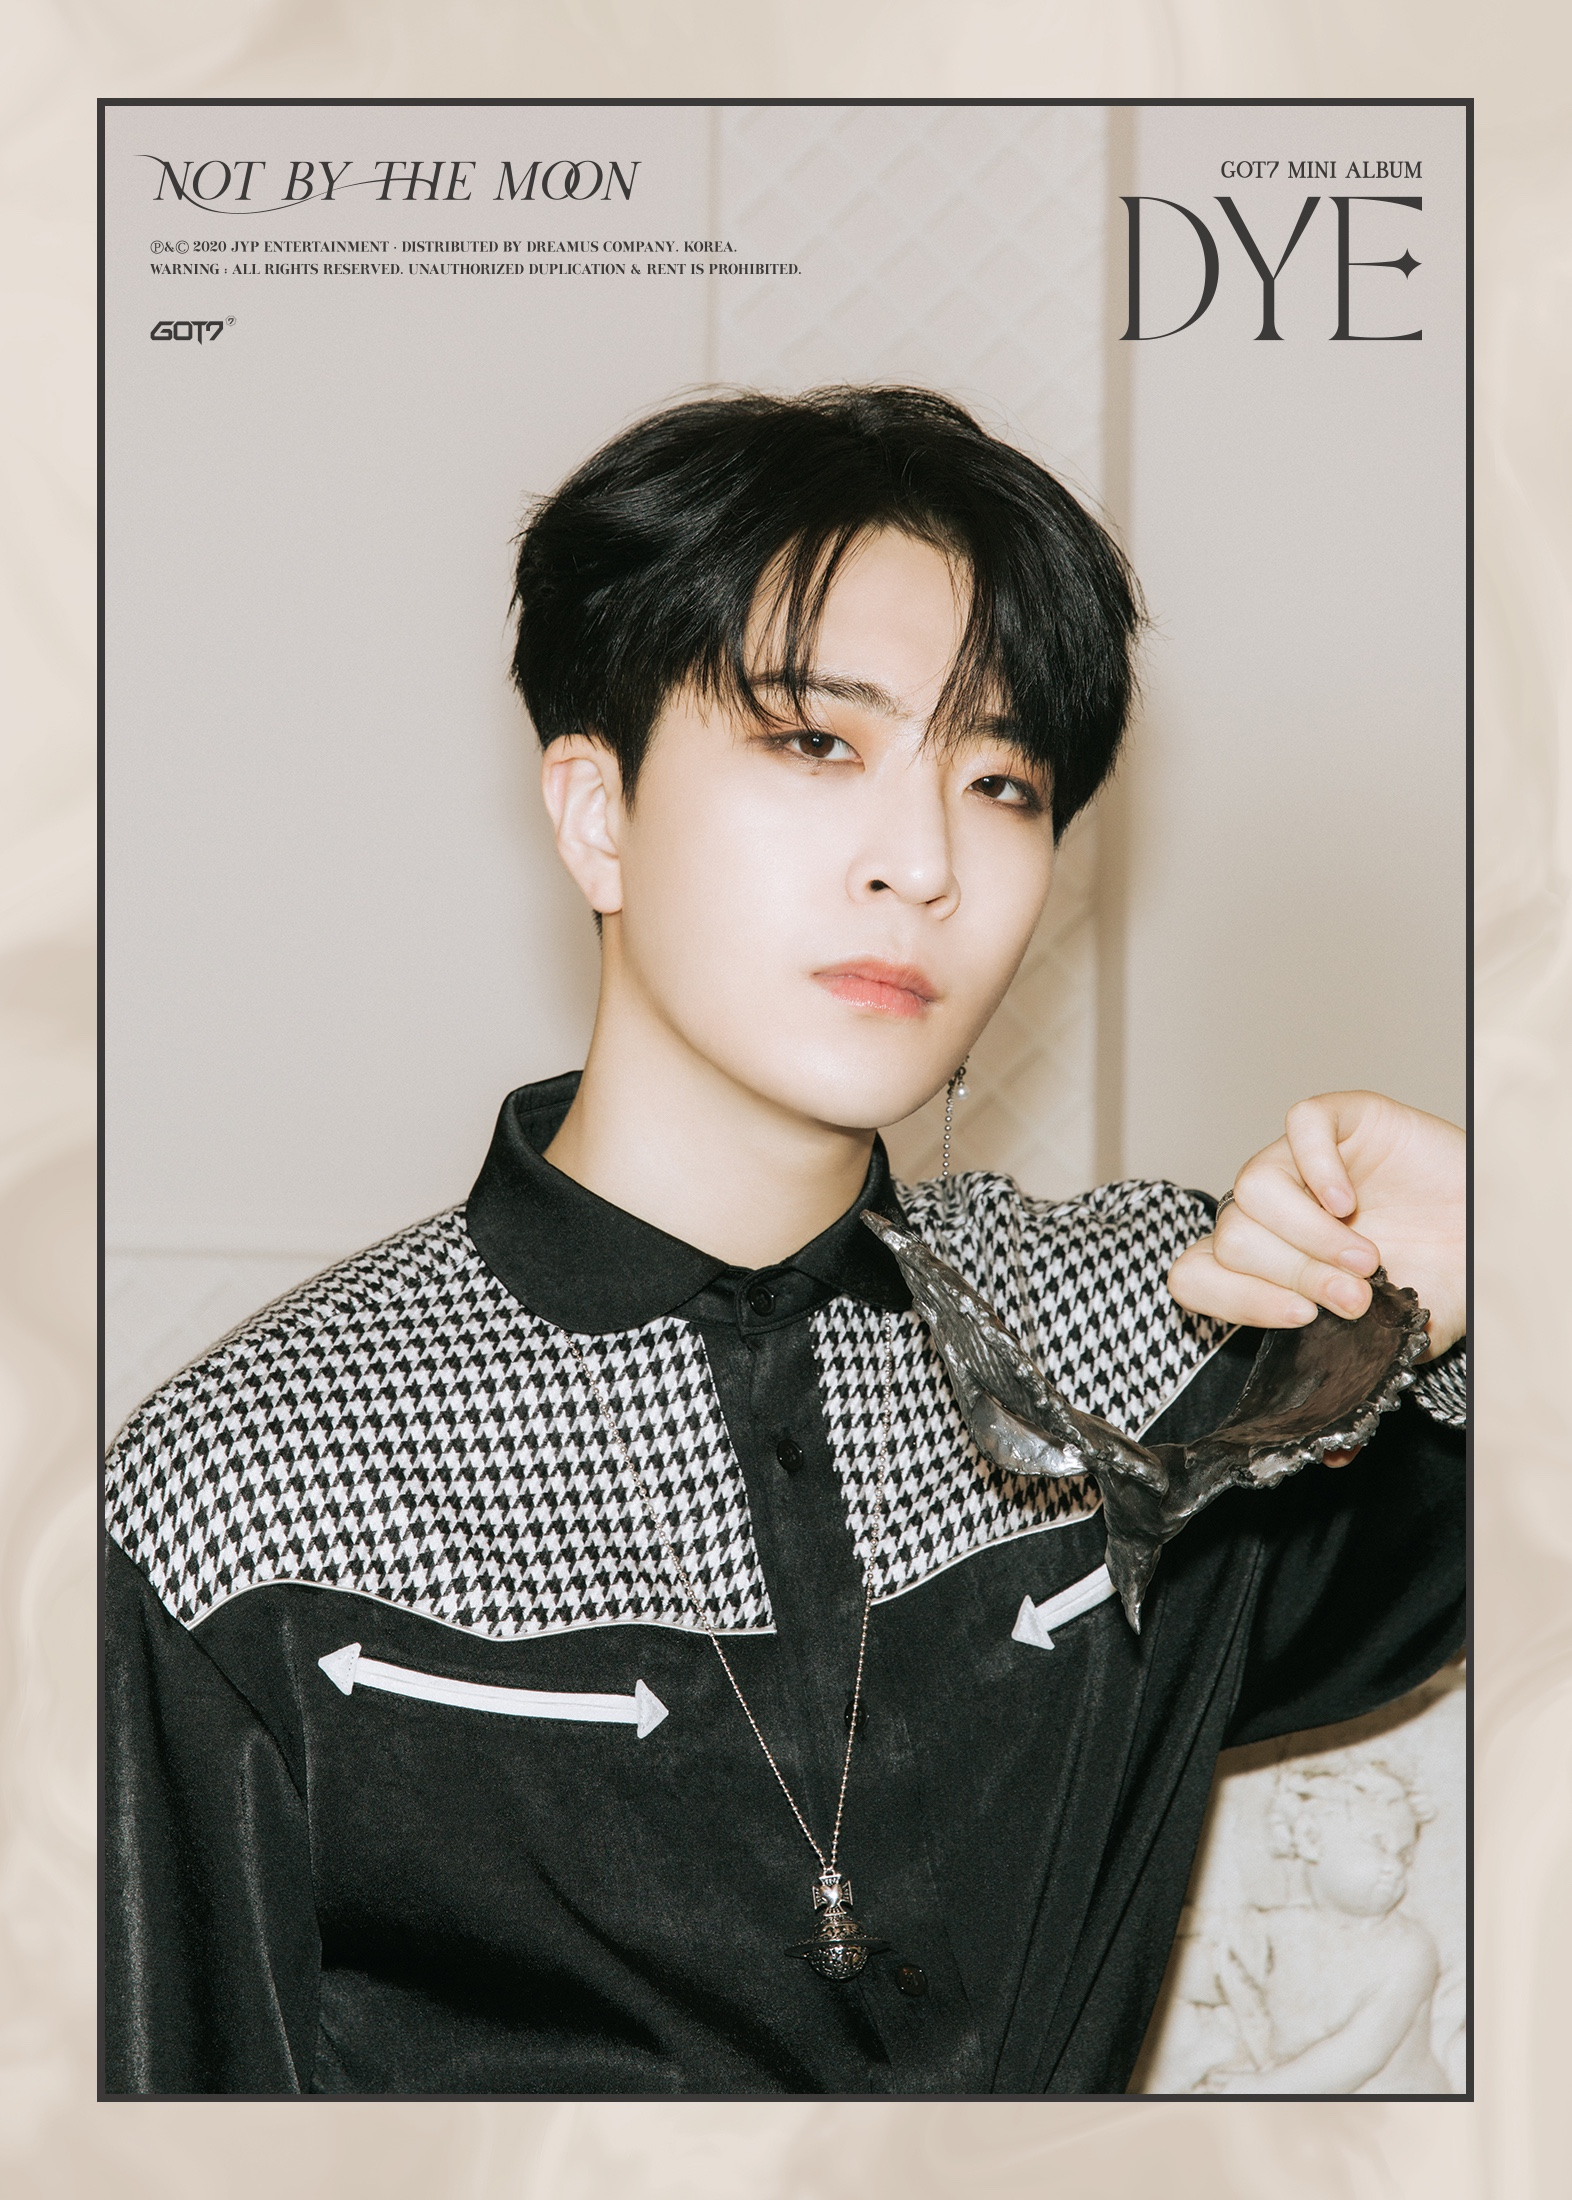 Youngjae 2nd teaser image for DYE comeback